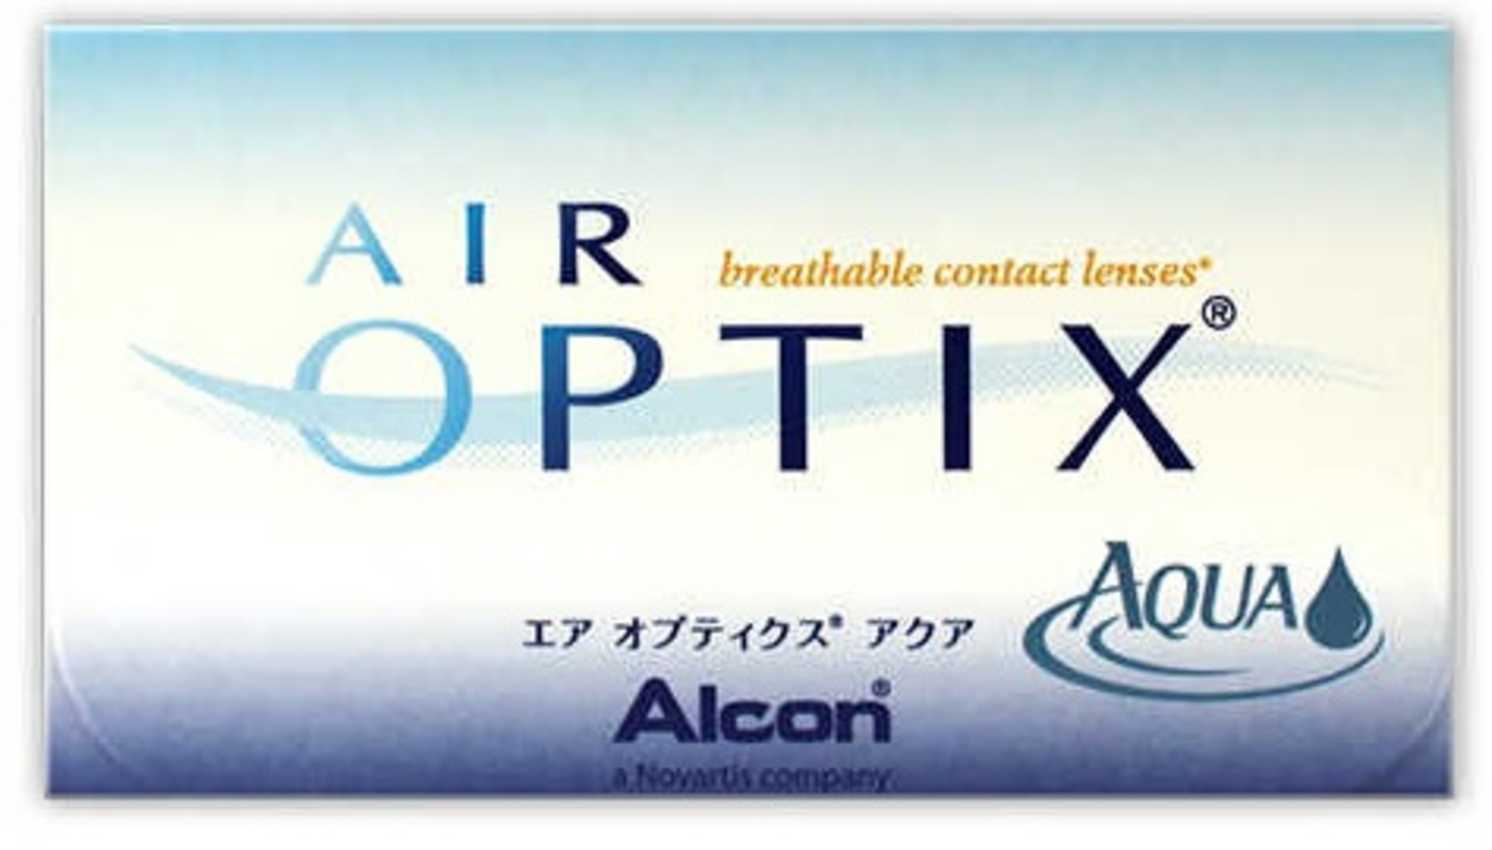 Disposable monthly contact lenses